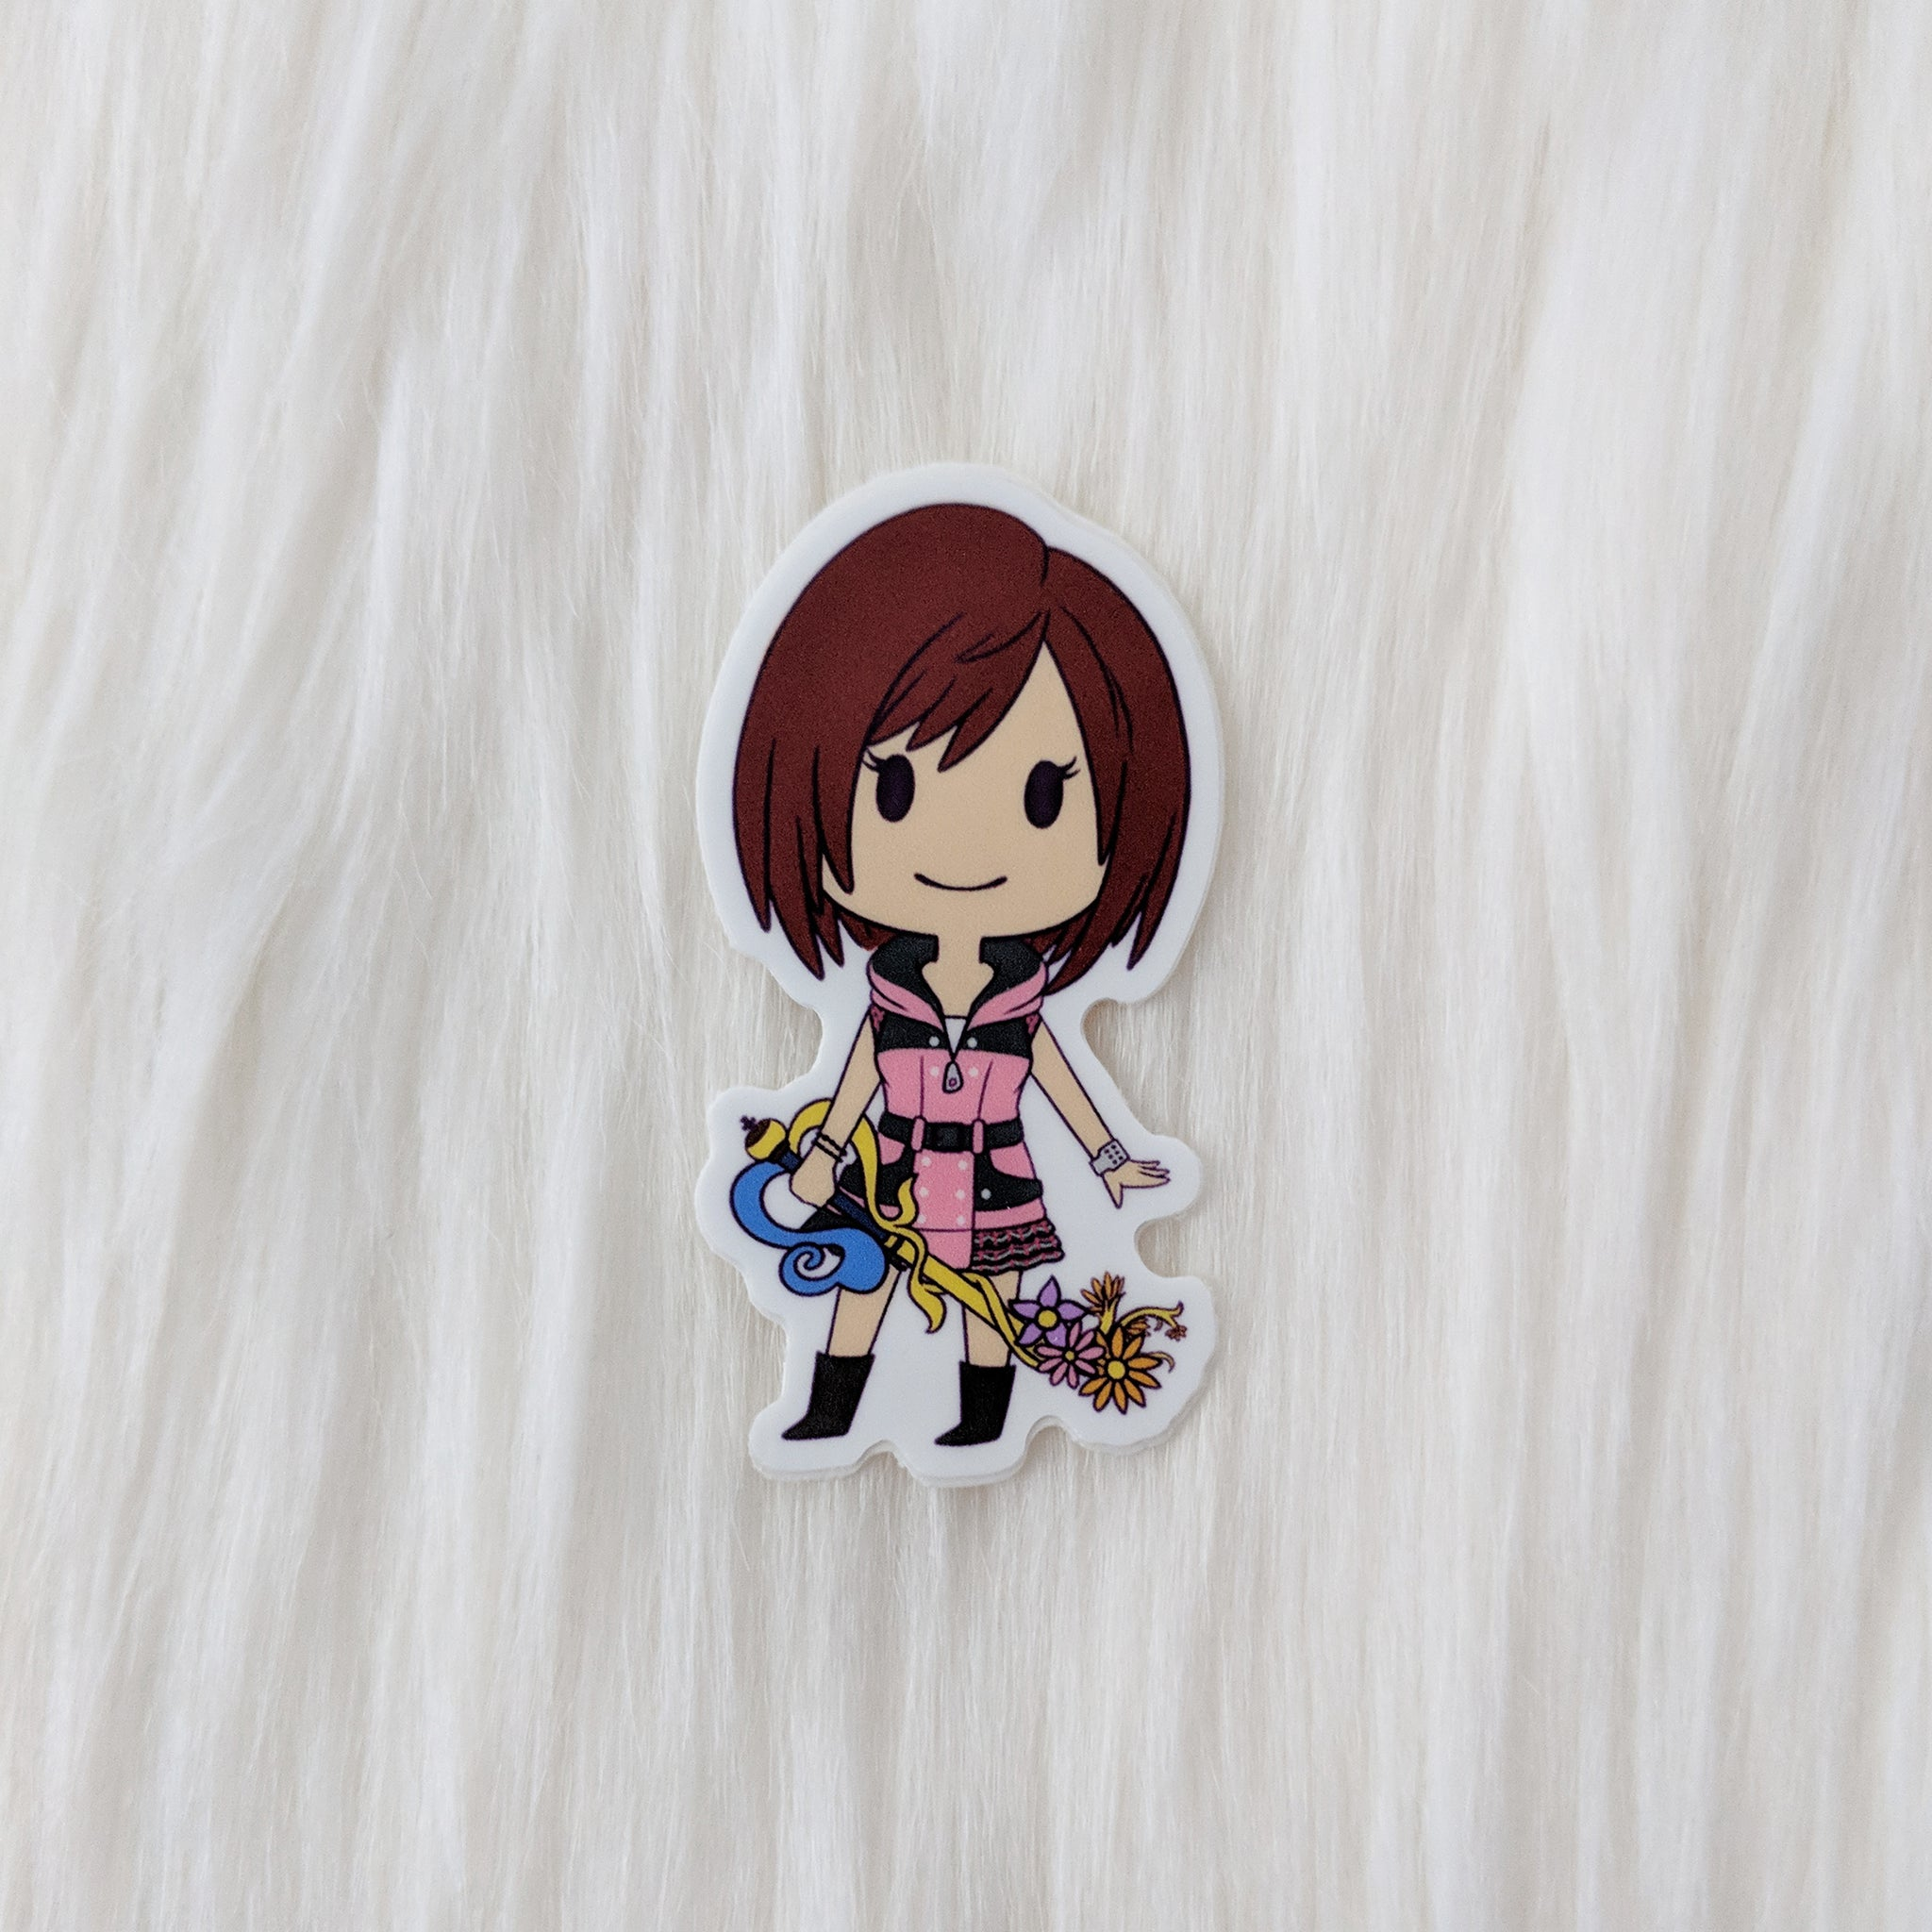 Kairi - Kingdom Hearts Vinyl Sticker